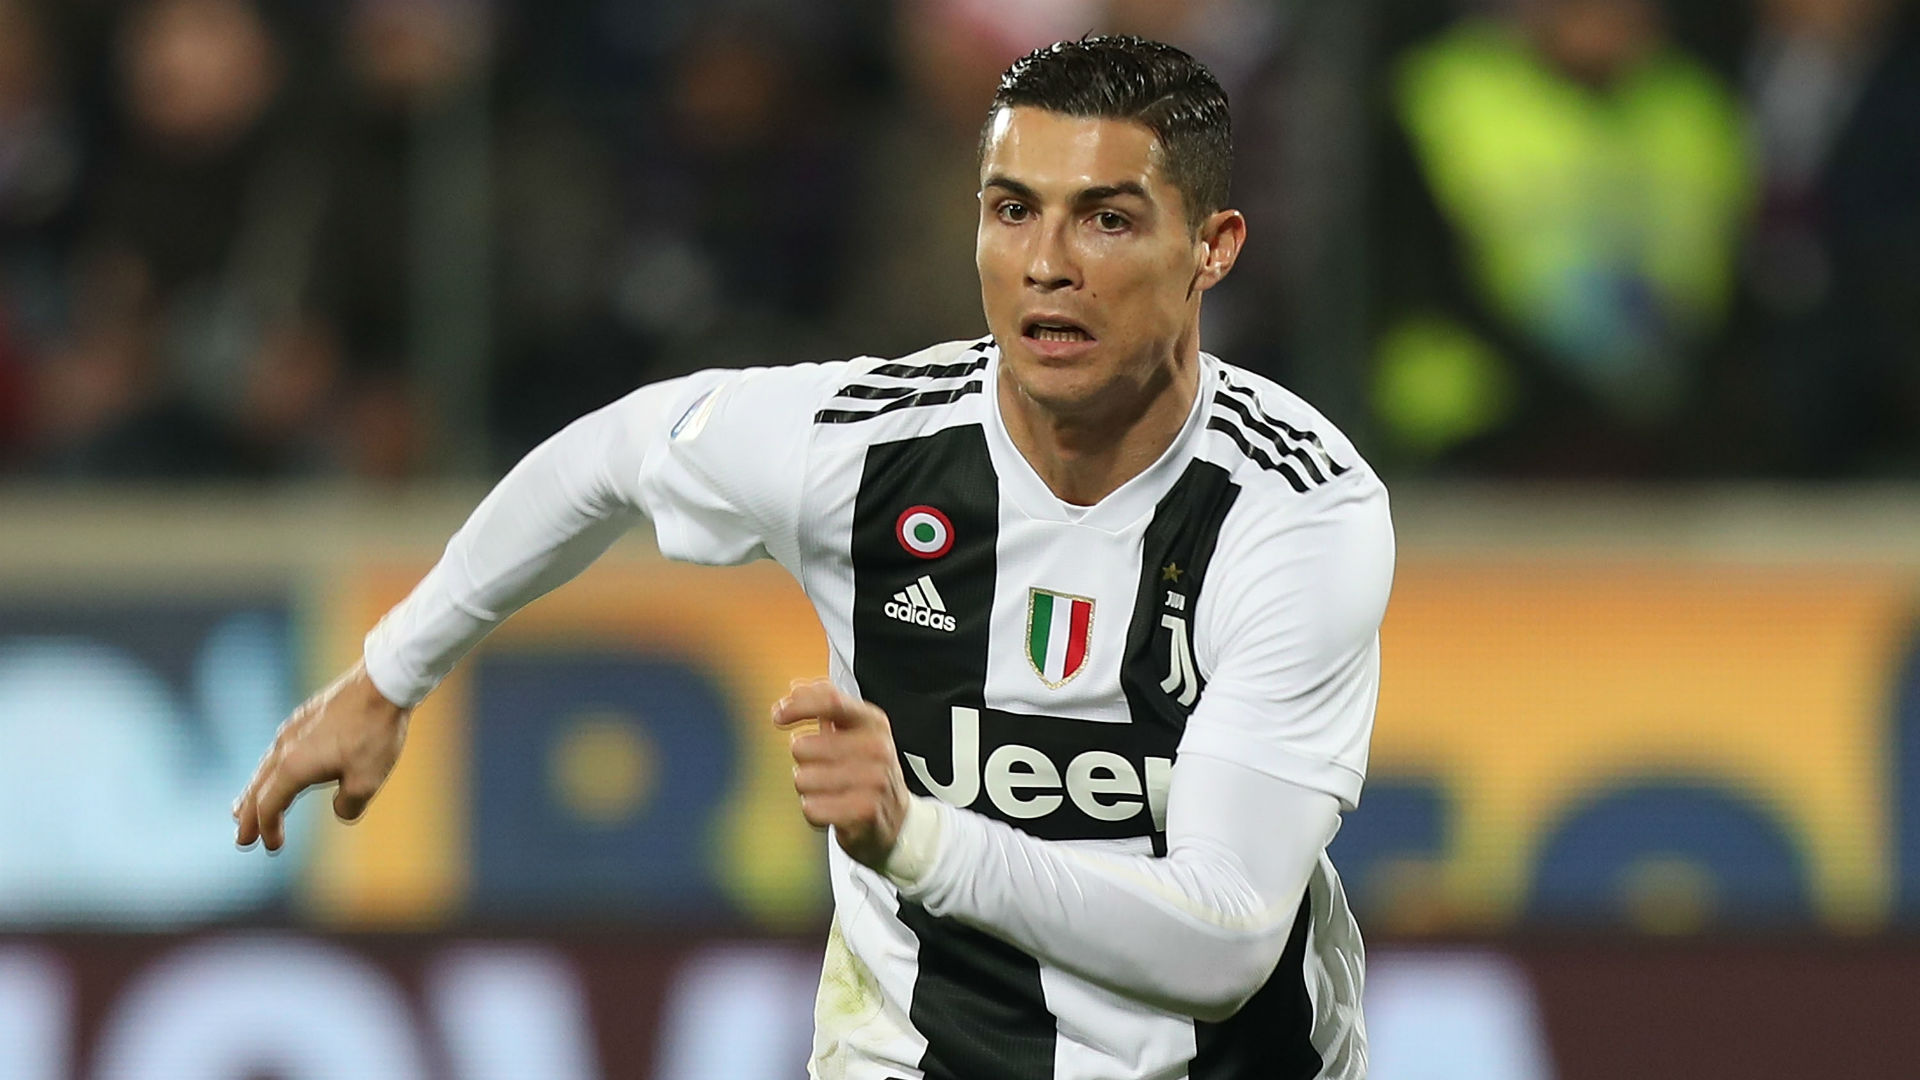 Juve won't rest Ronaldo against Young Boys